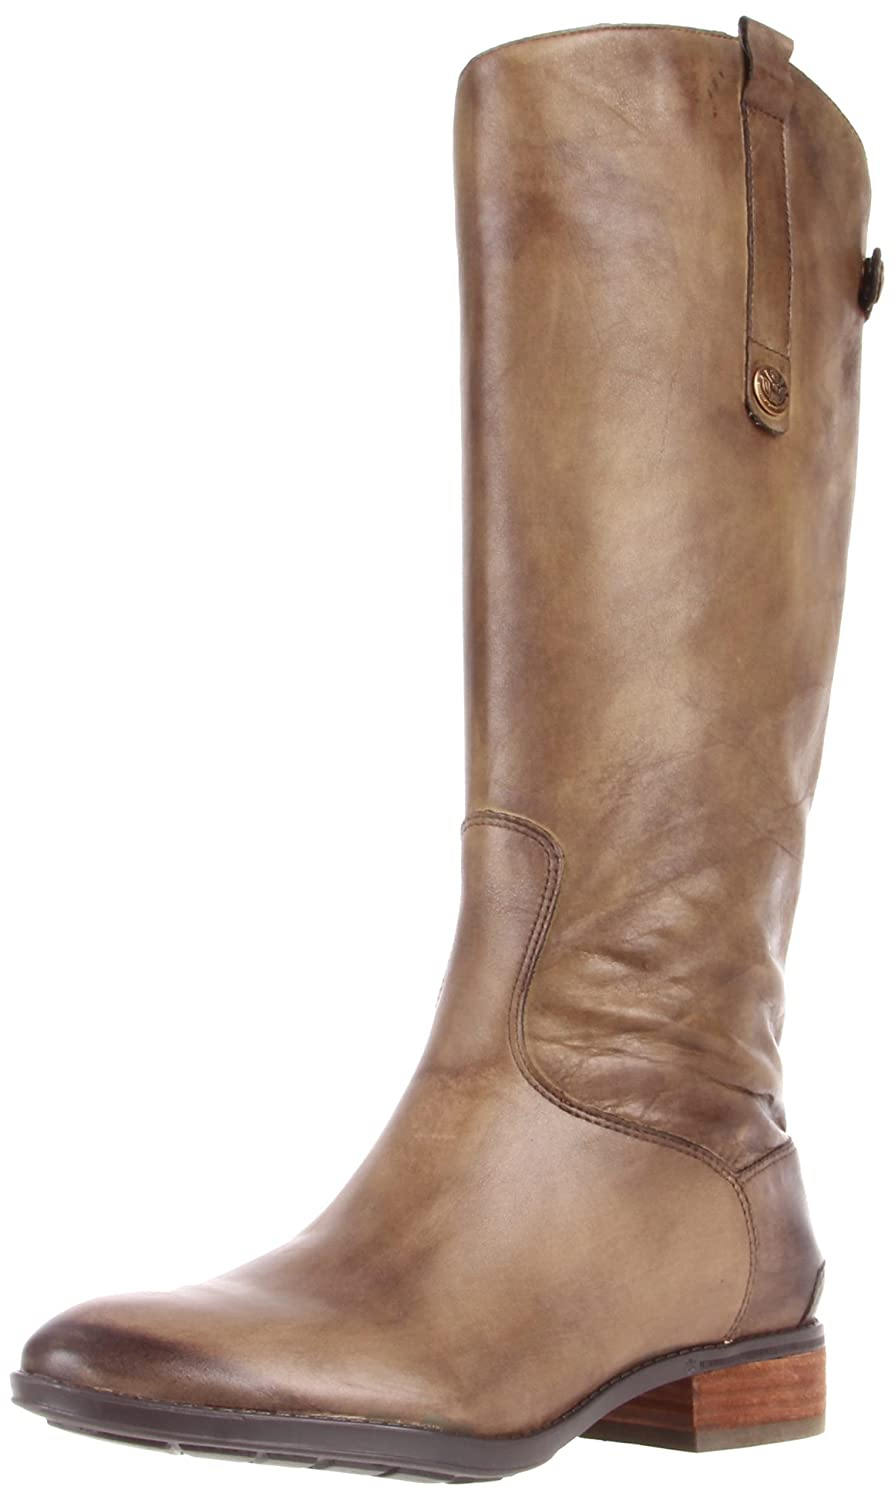 Sam Edelman Women's Penny Riding Boot B00BI5T8BI 9 C/D US|Olive